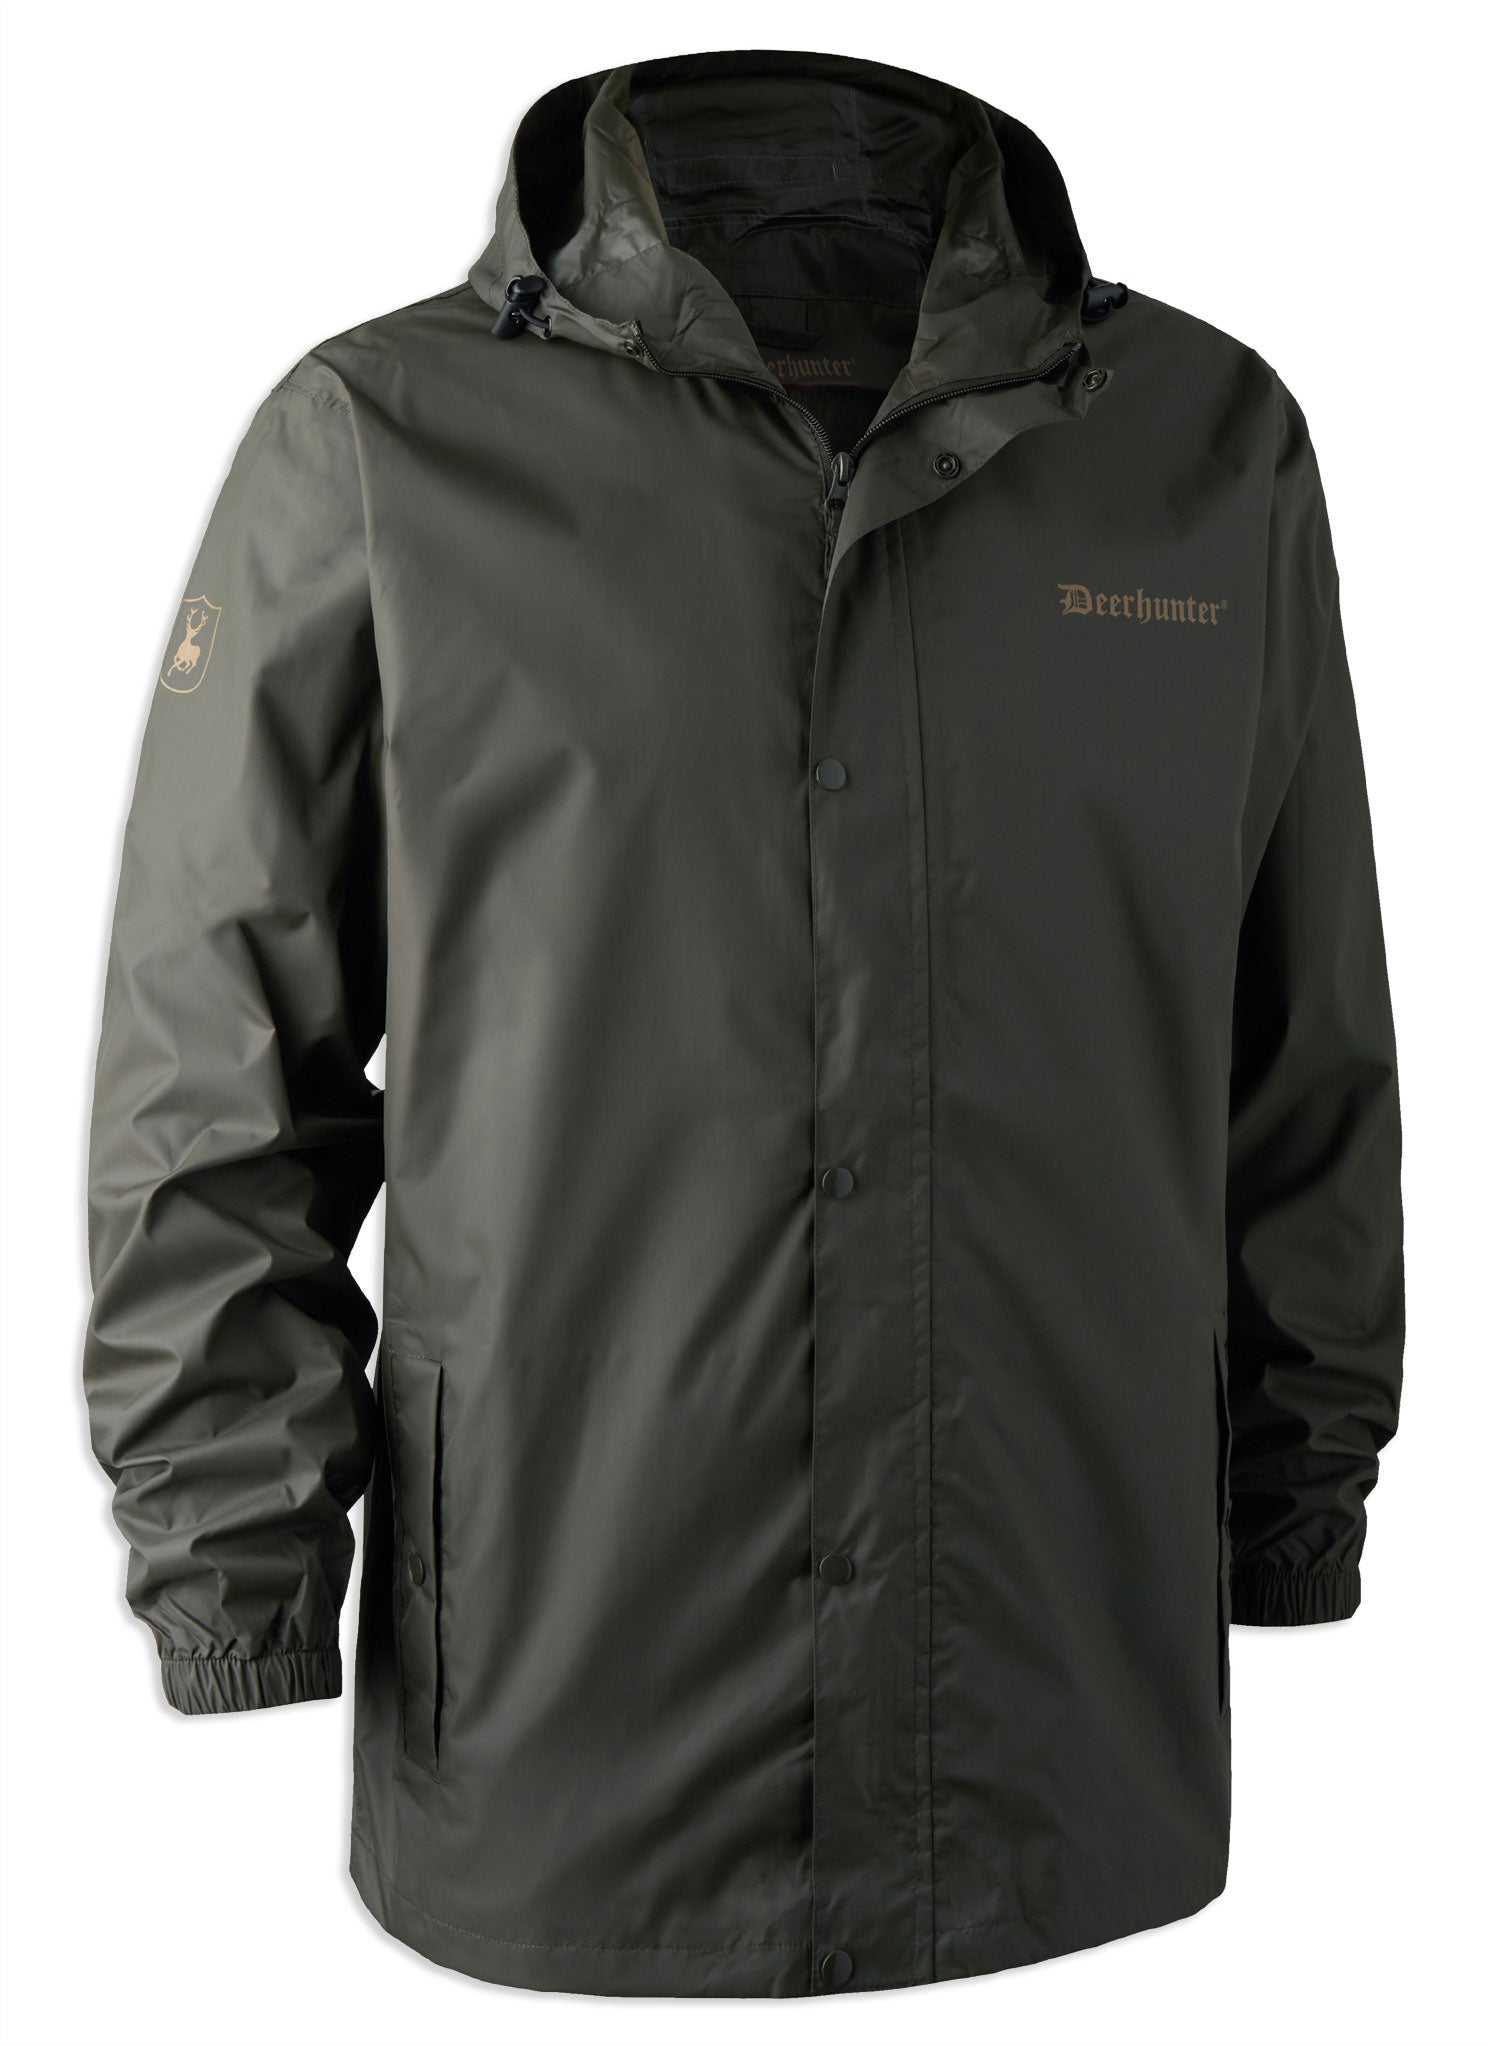 Deerhunter Survivor Packable Rain Jacket